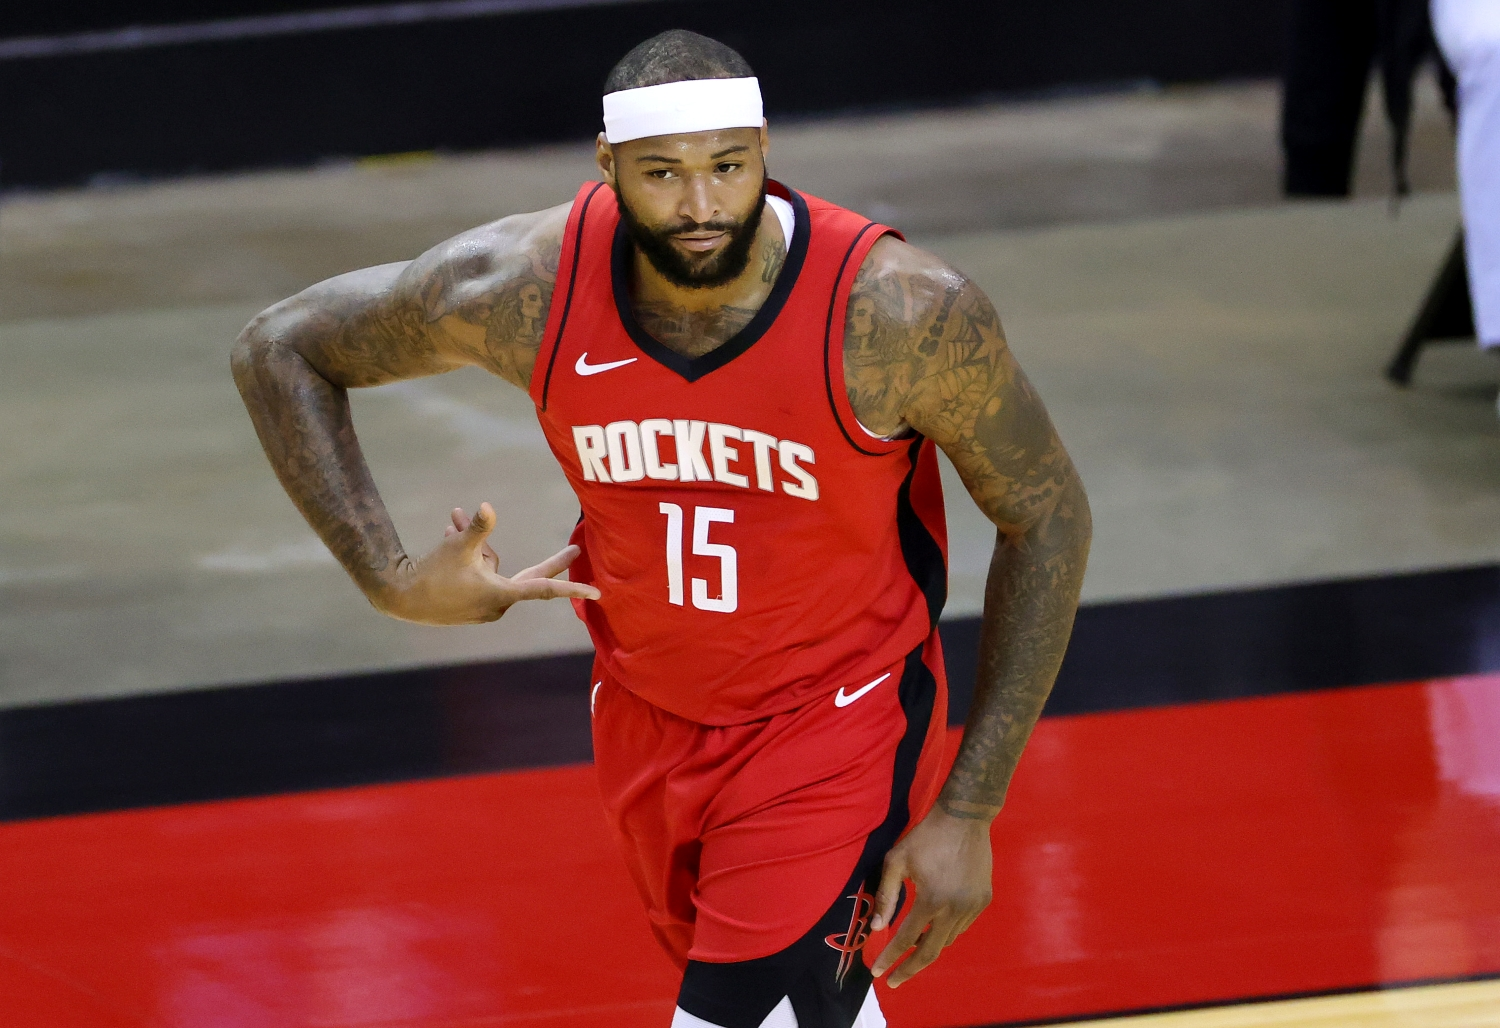 DeMarcus Cousins of the Houston Rockets reacts during the first quarter of a game against the LA Lakers.